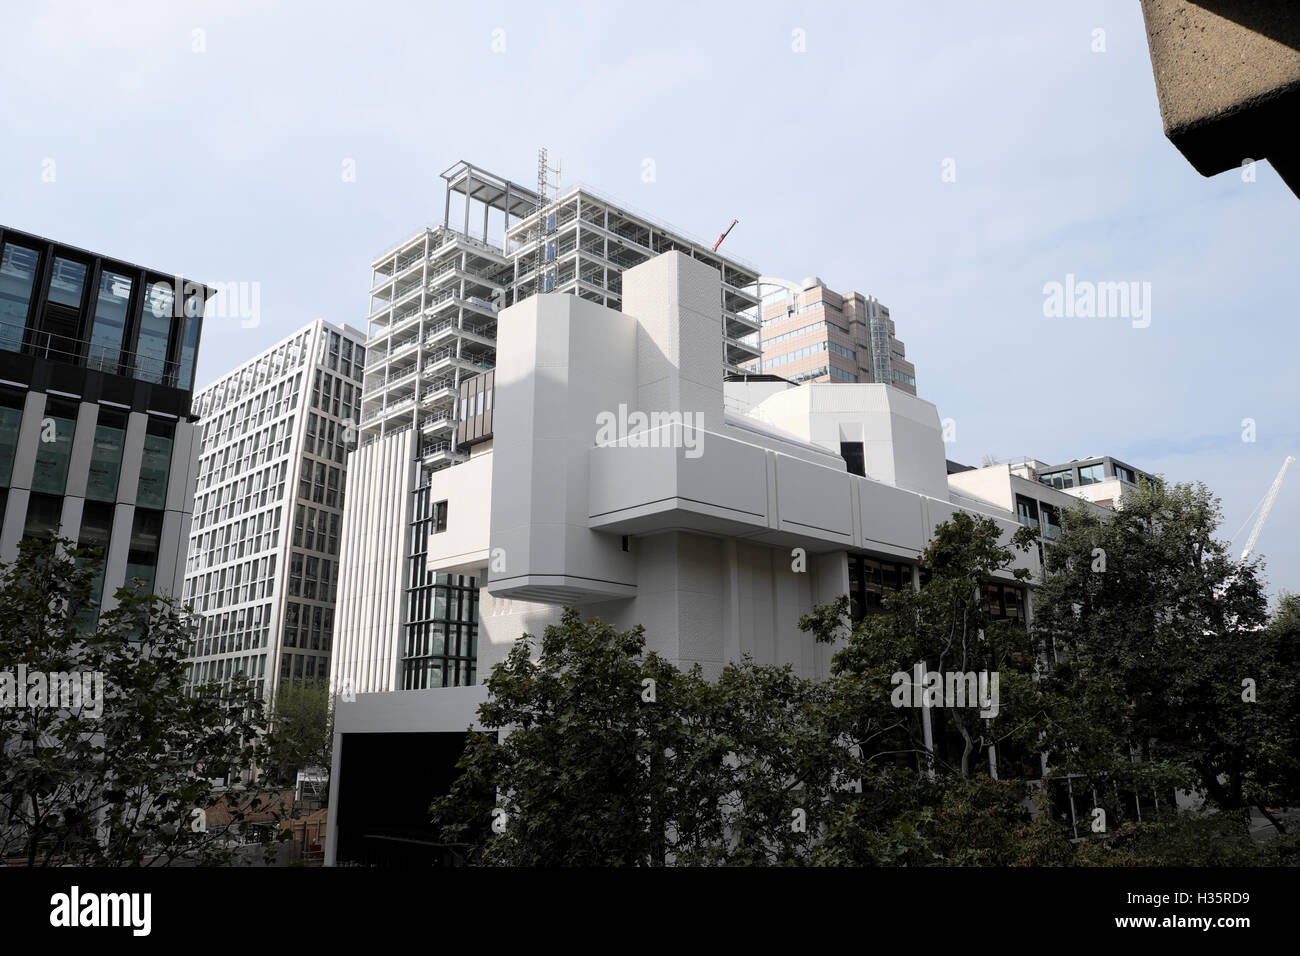 Exterior view of Salters Hall building in 4 Fore Street architect Sir Basil Spence City of London EC2Y UK  KATHY - Stock Image